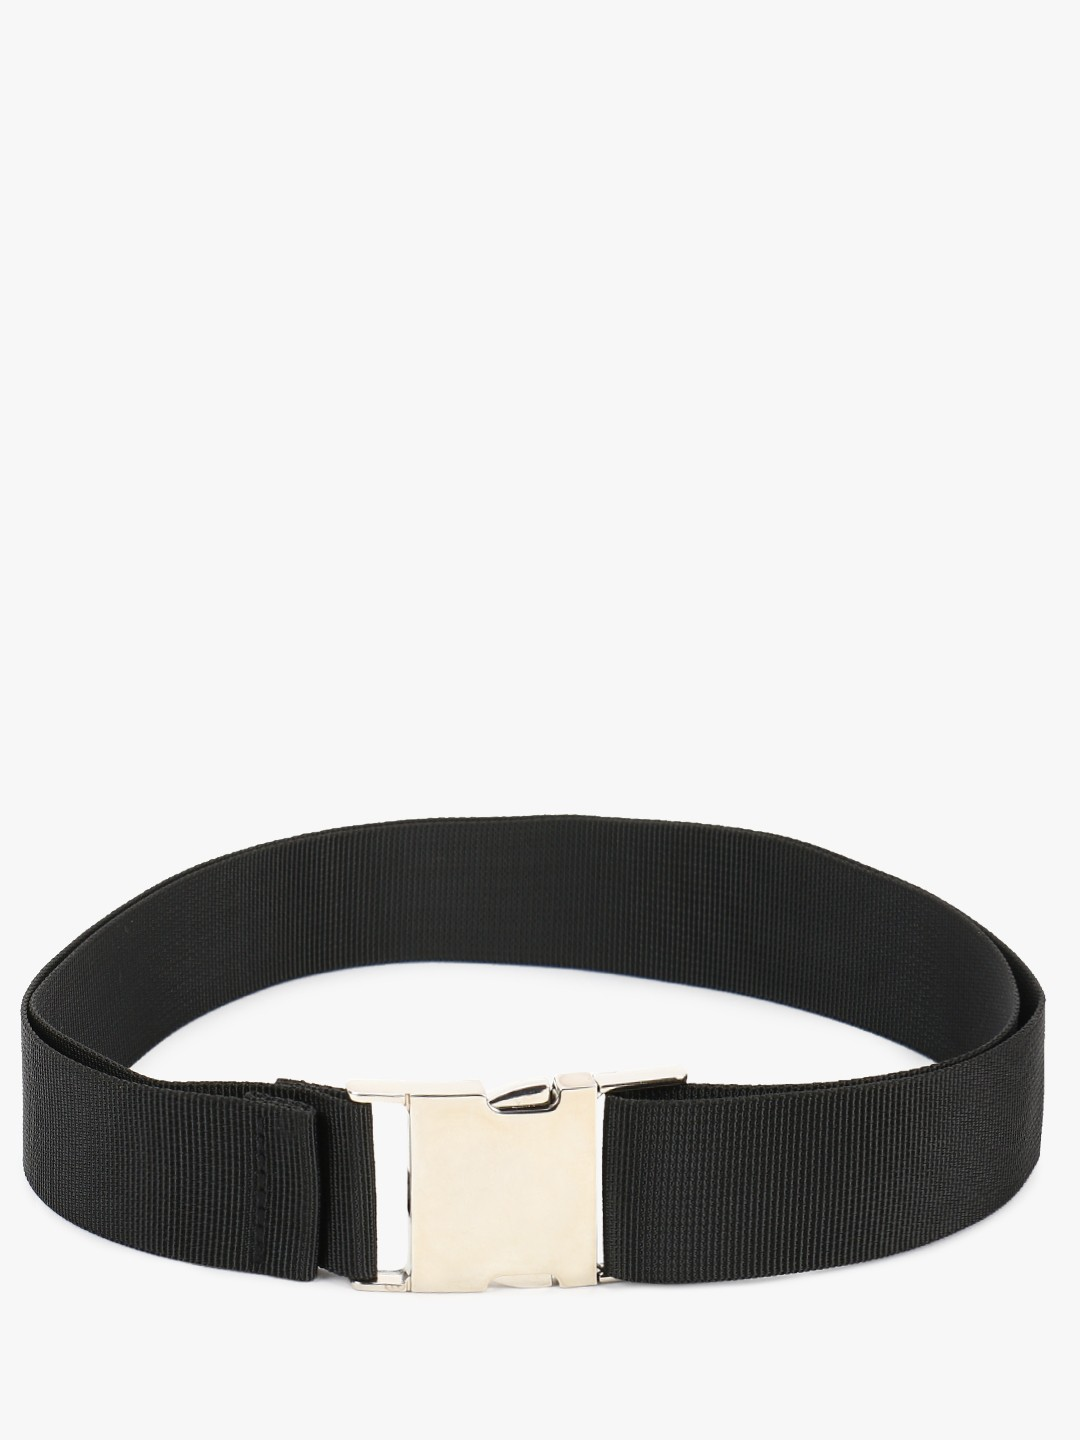 New Look Black Lock Buckle Webbing Belt 1